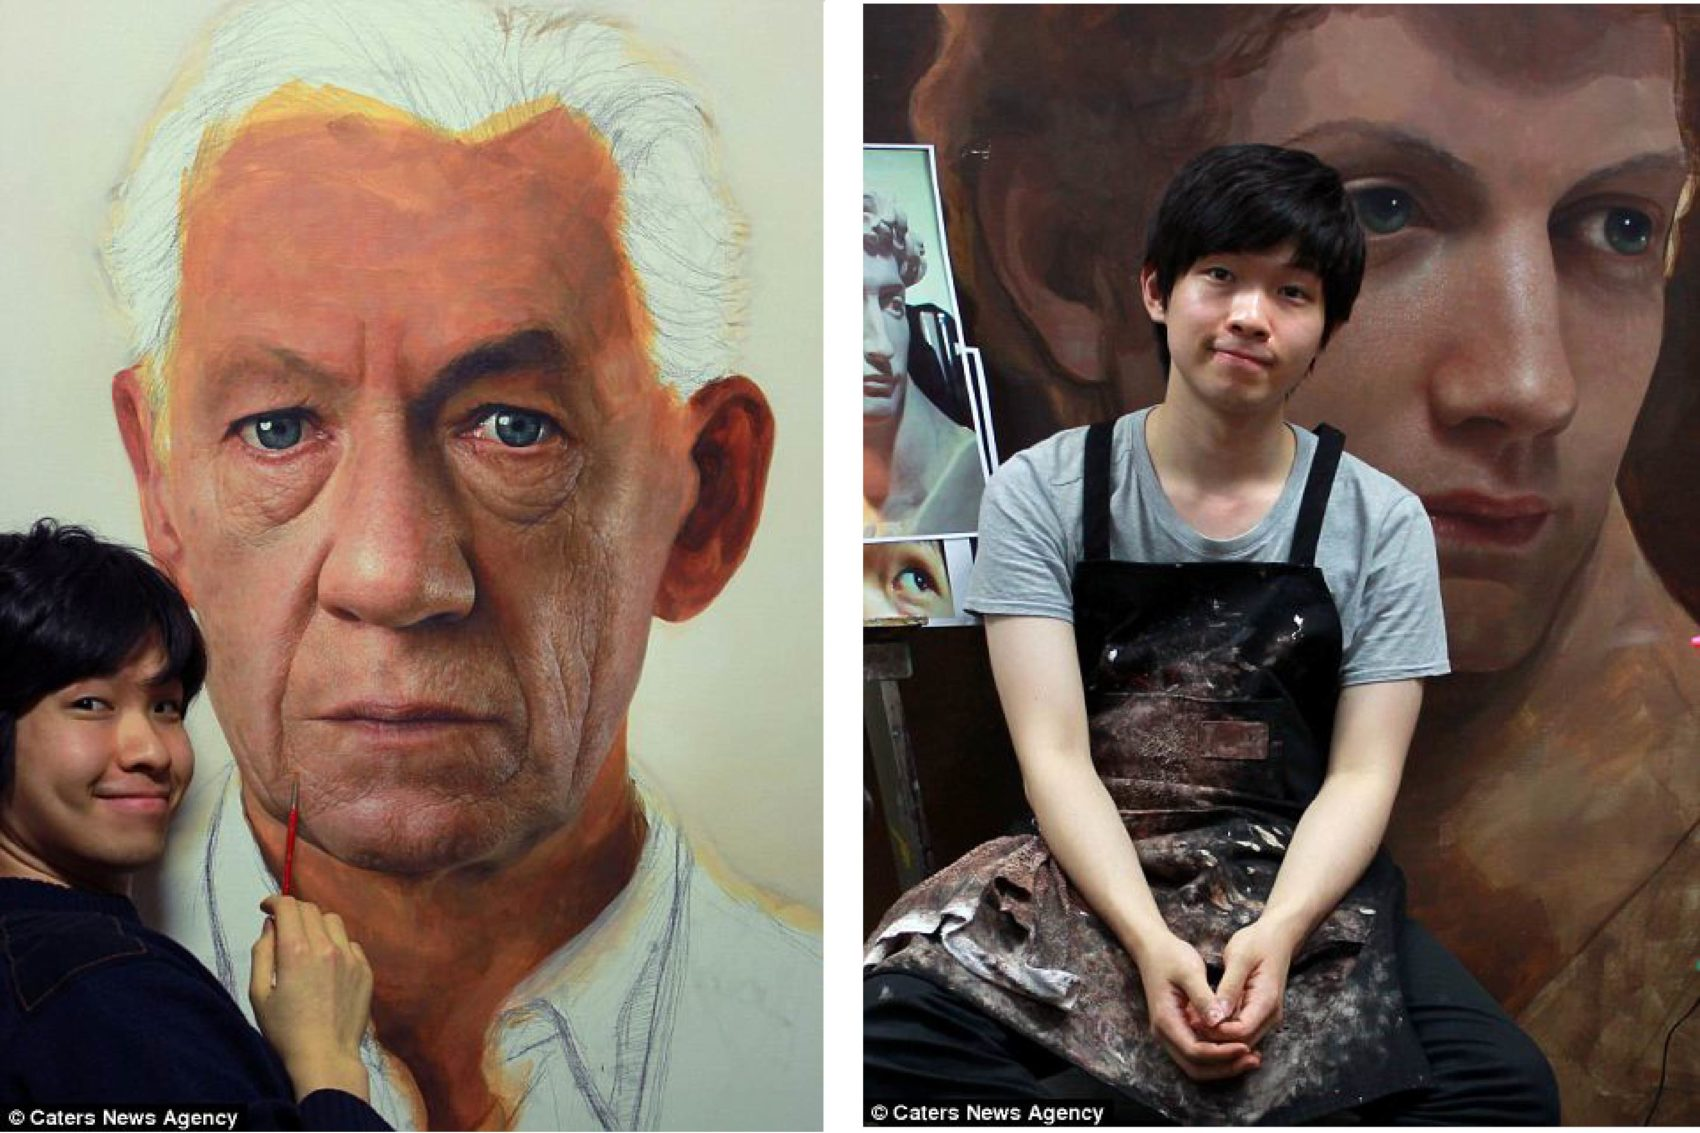 Giant Hyperrealistic Portrait Paintings By Joongwon Jeong 11